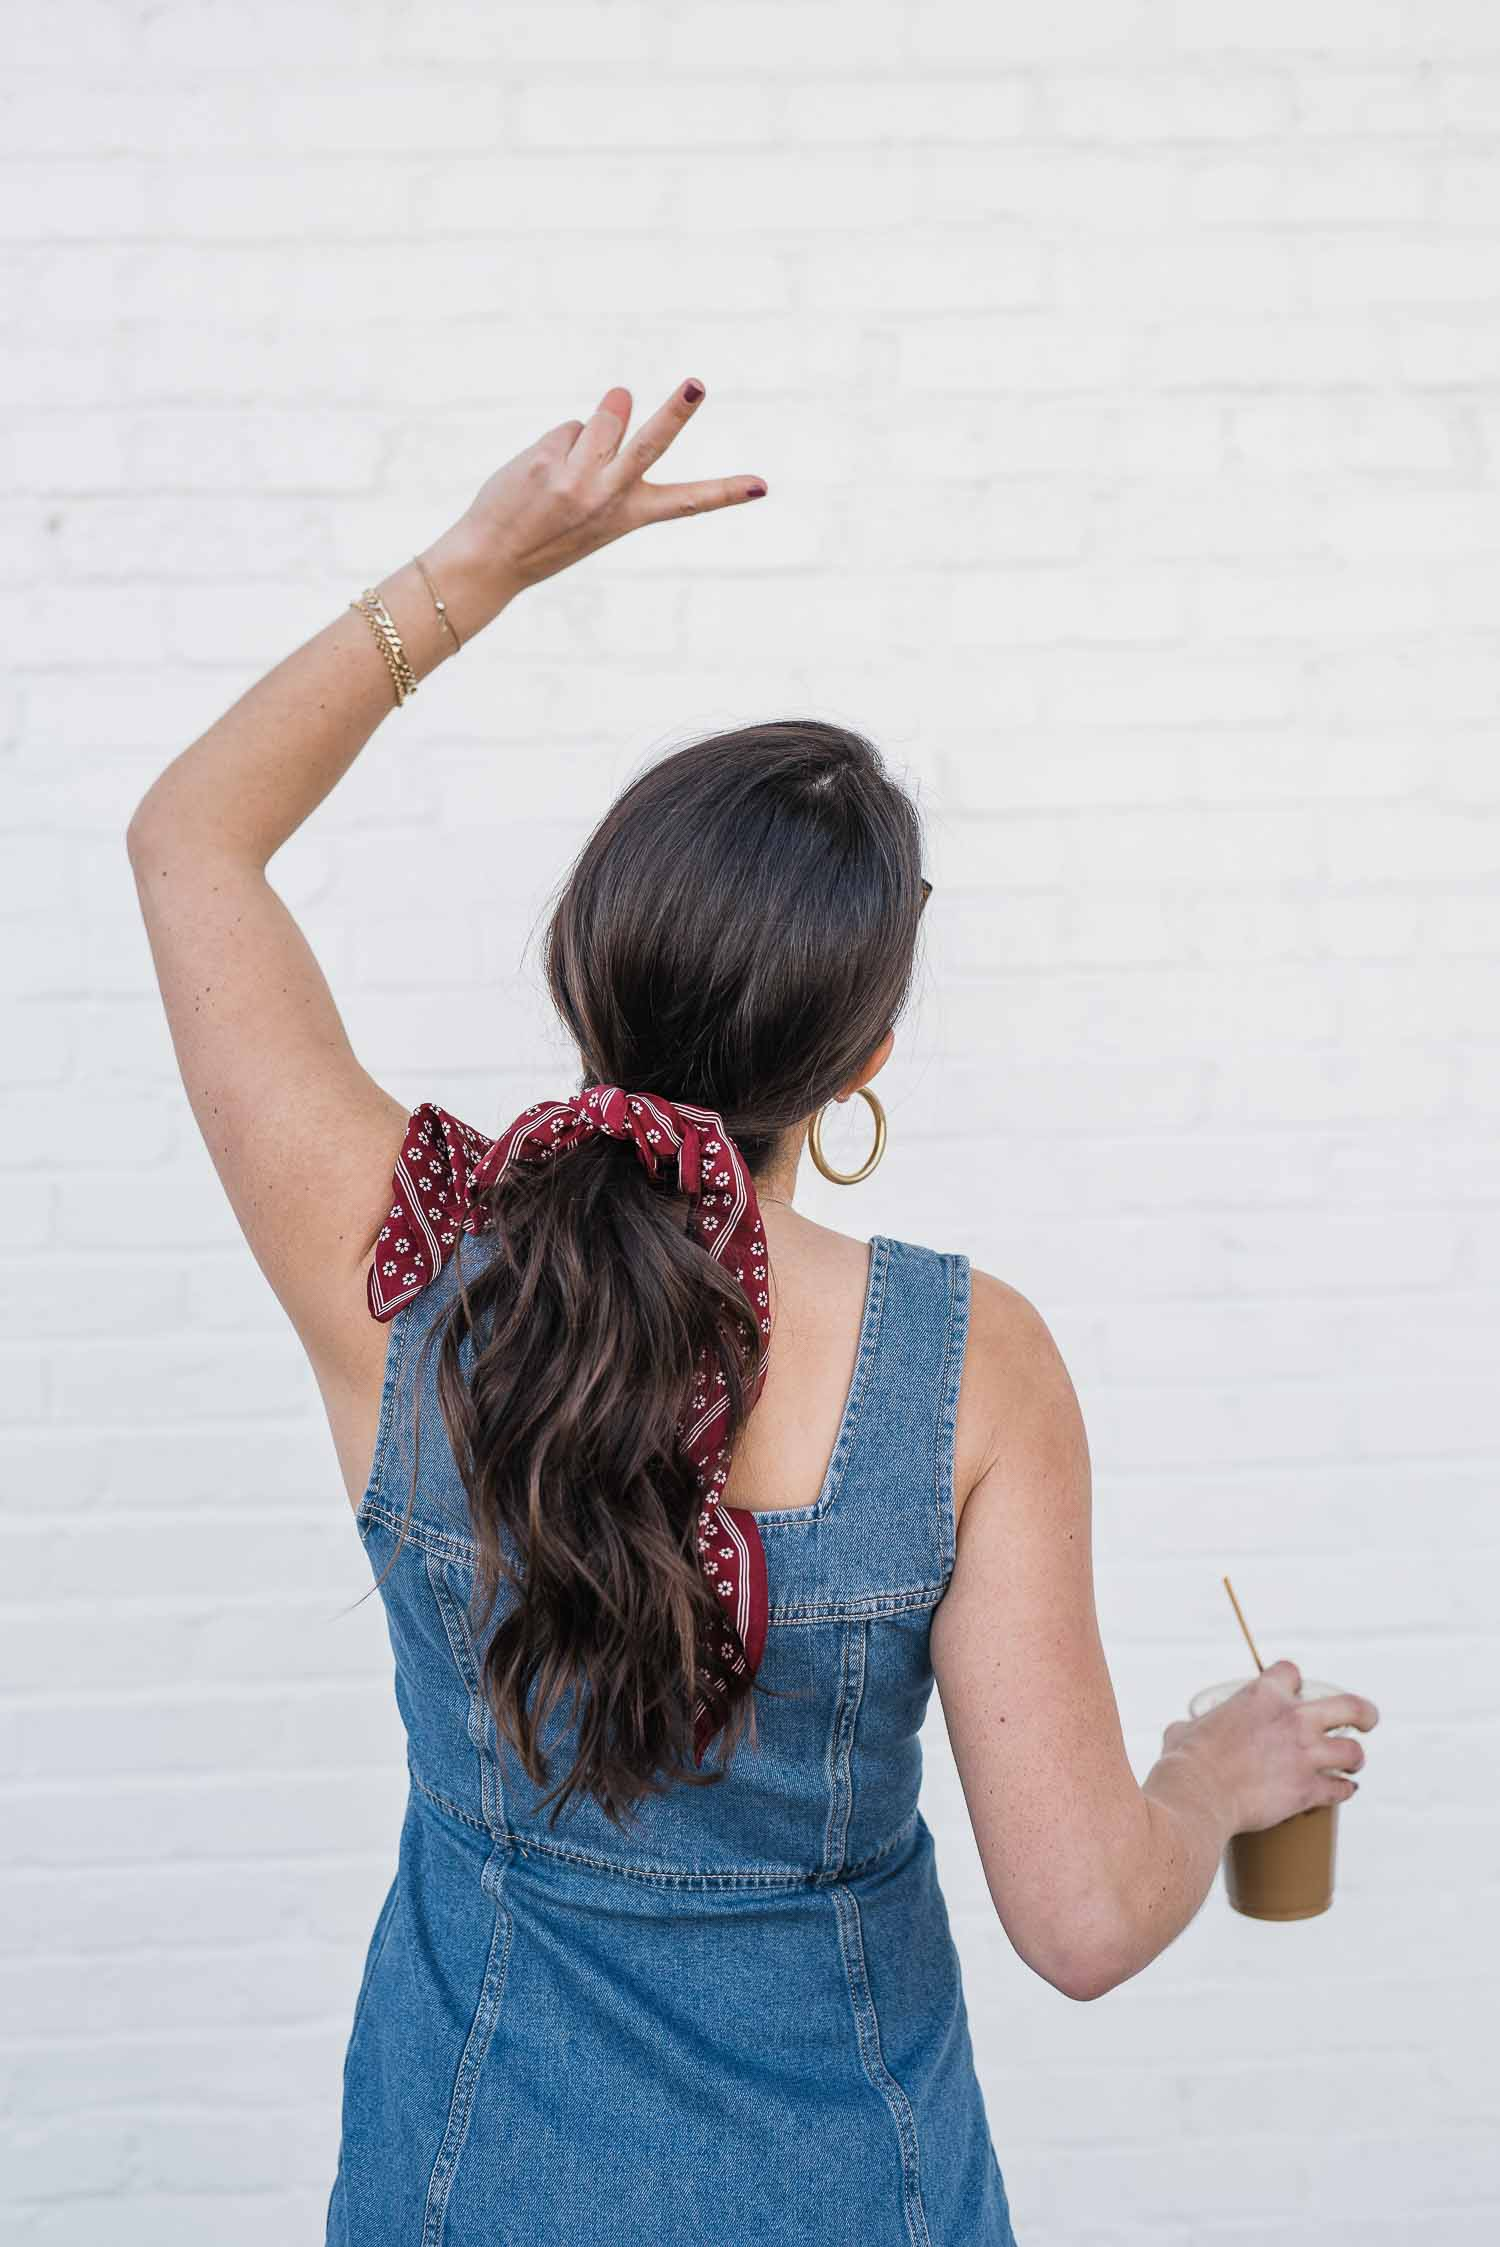 long ponytail with bandana, peace sign with ponytail